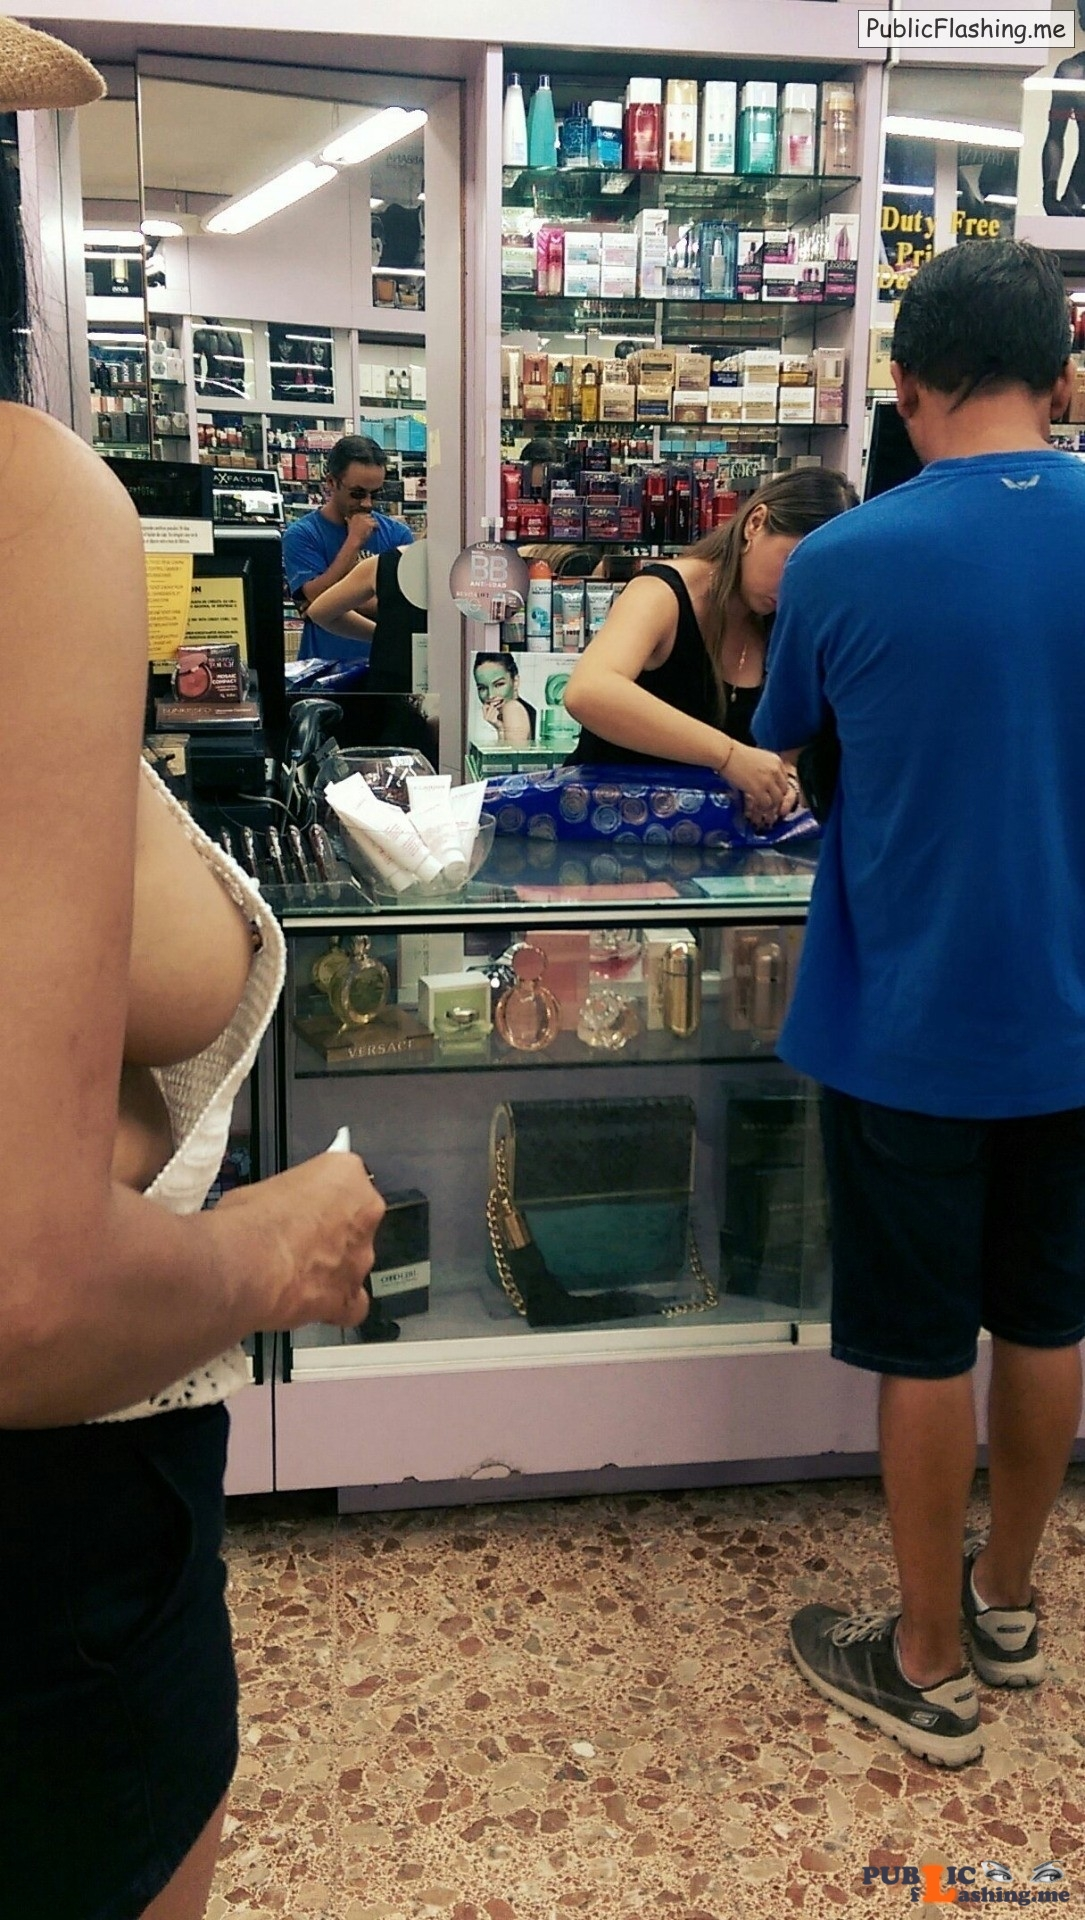 Nipple slip voyeur in supermarket Topless beauty Public Flashing